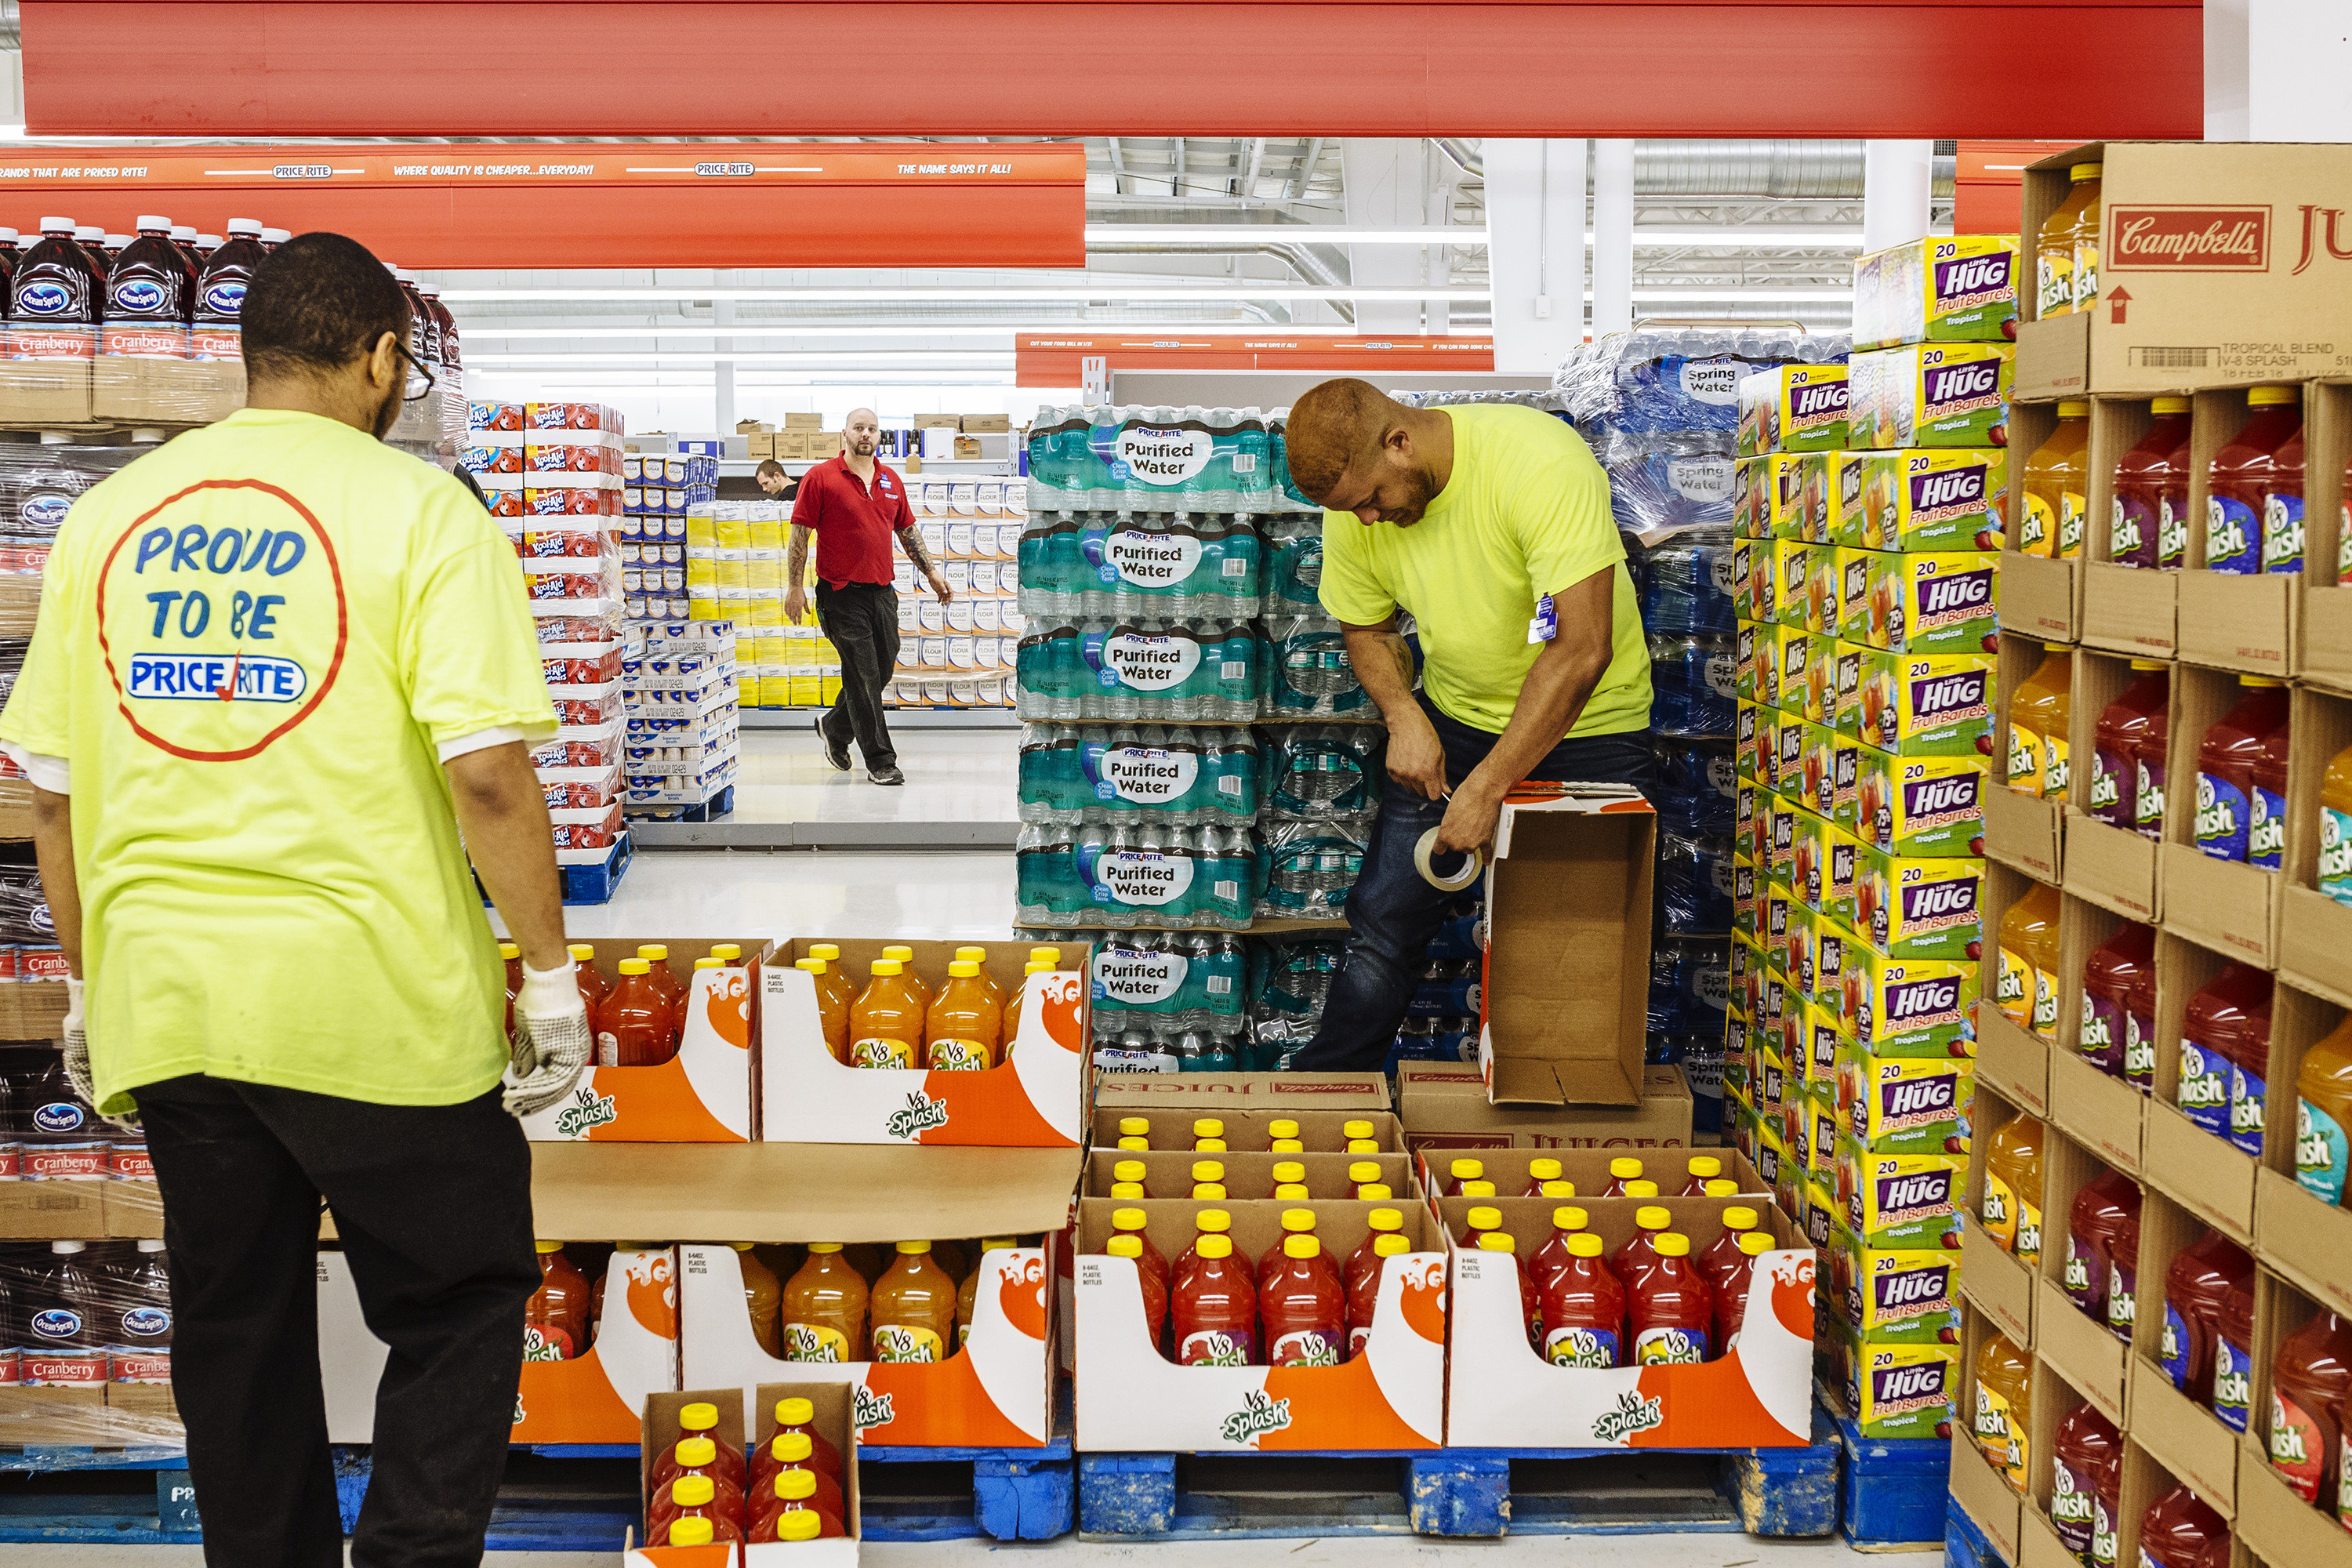 Two men in neon Price Rite shirts set up a display of juice bottles inside the supermarket